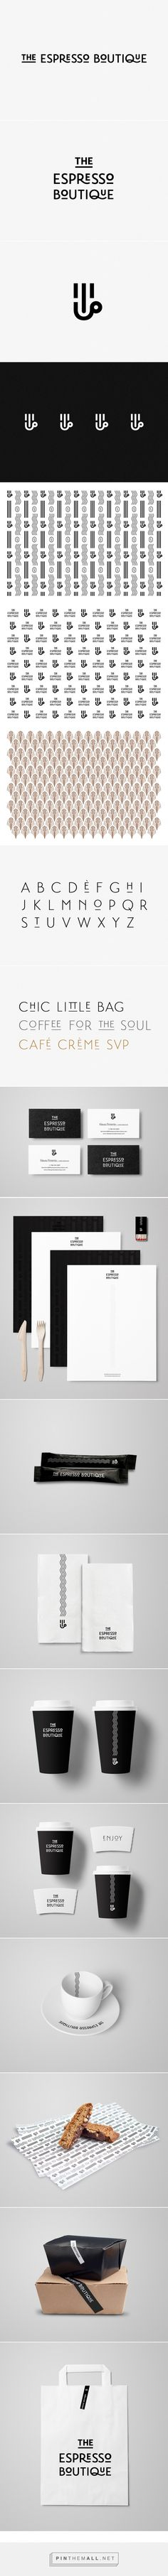 The Espresso Boutique identity packaging branding by Estudio Menta curated by Packaging Diva PD. Let's grab a cup of coffee.